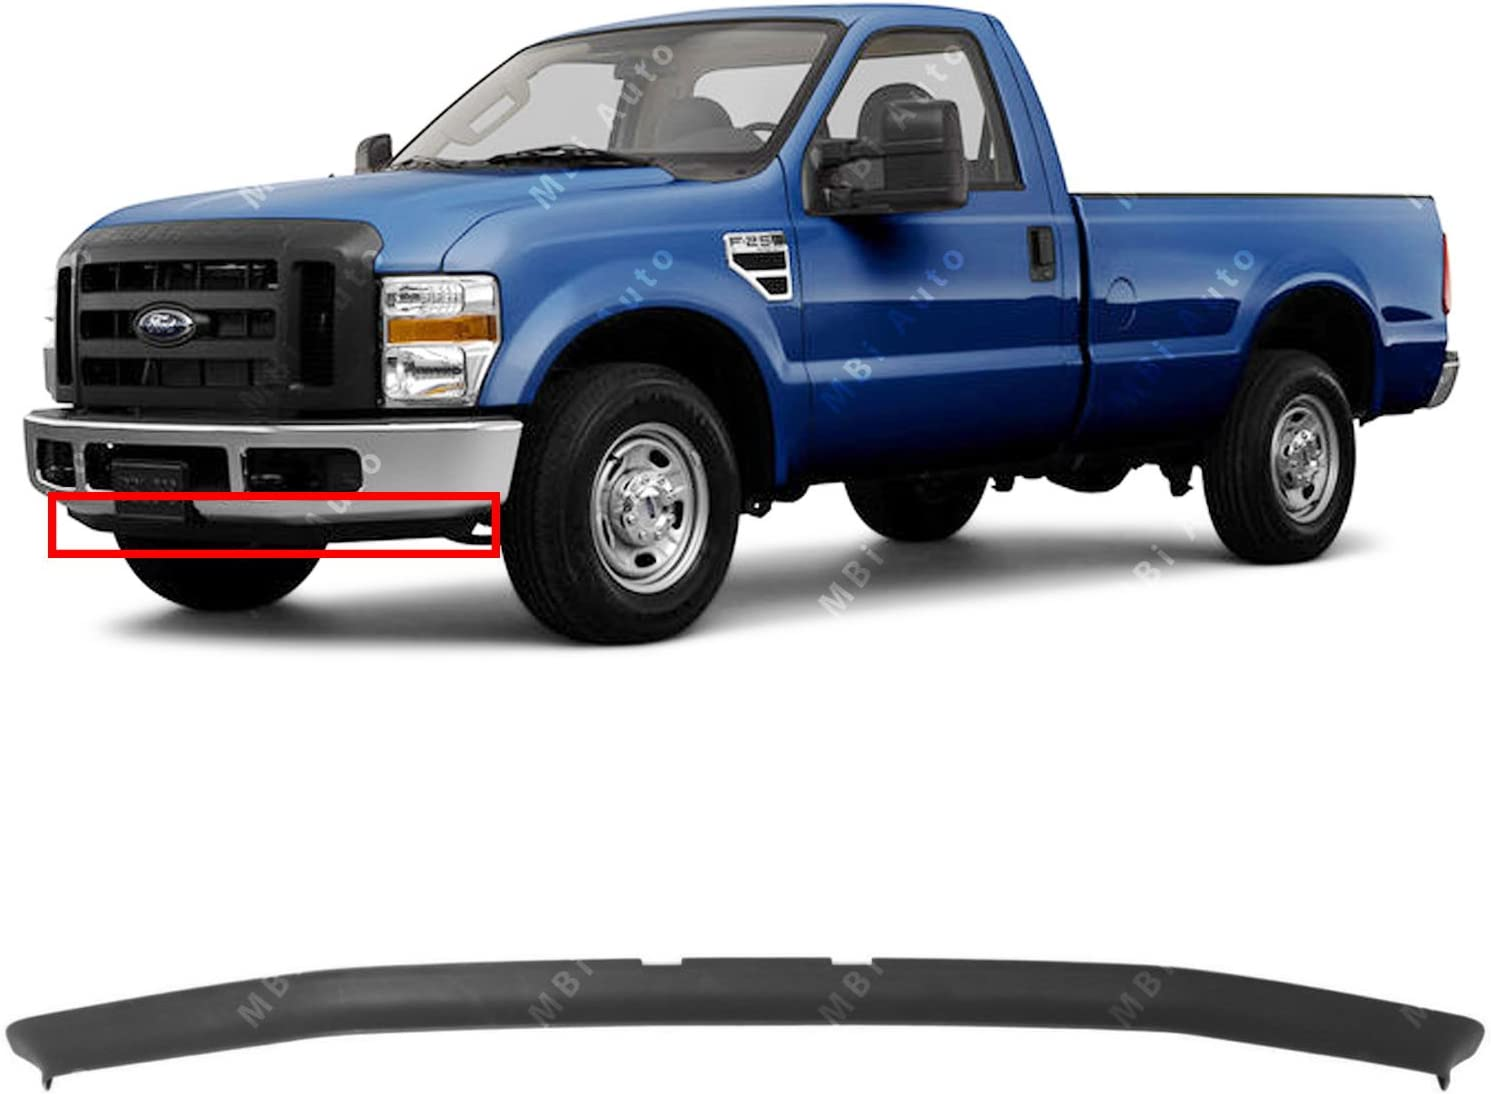 Amazon Com Mbi Auto Textured Dark Gray Front Bumper Lower Air Deflector Valance For 2008 2010 Ford F250 F350 Super Duty 2wd 08 10 Fo1093114 Automotive